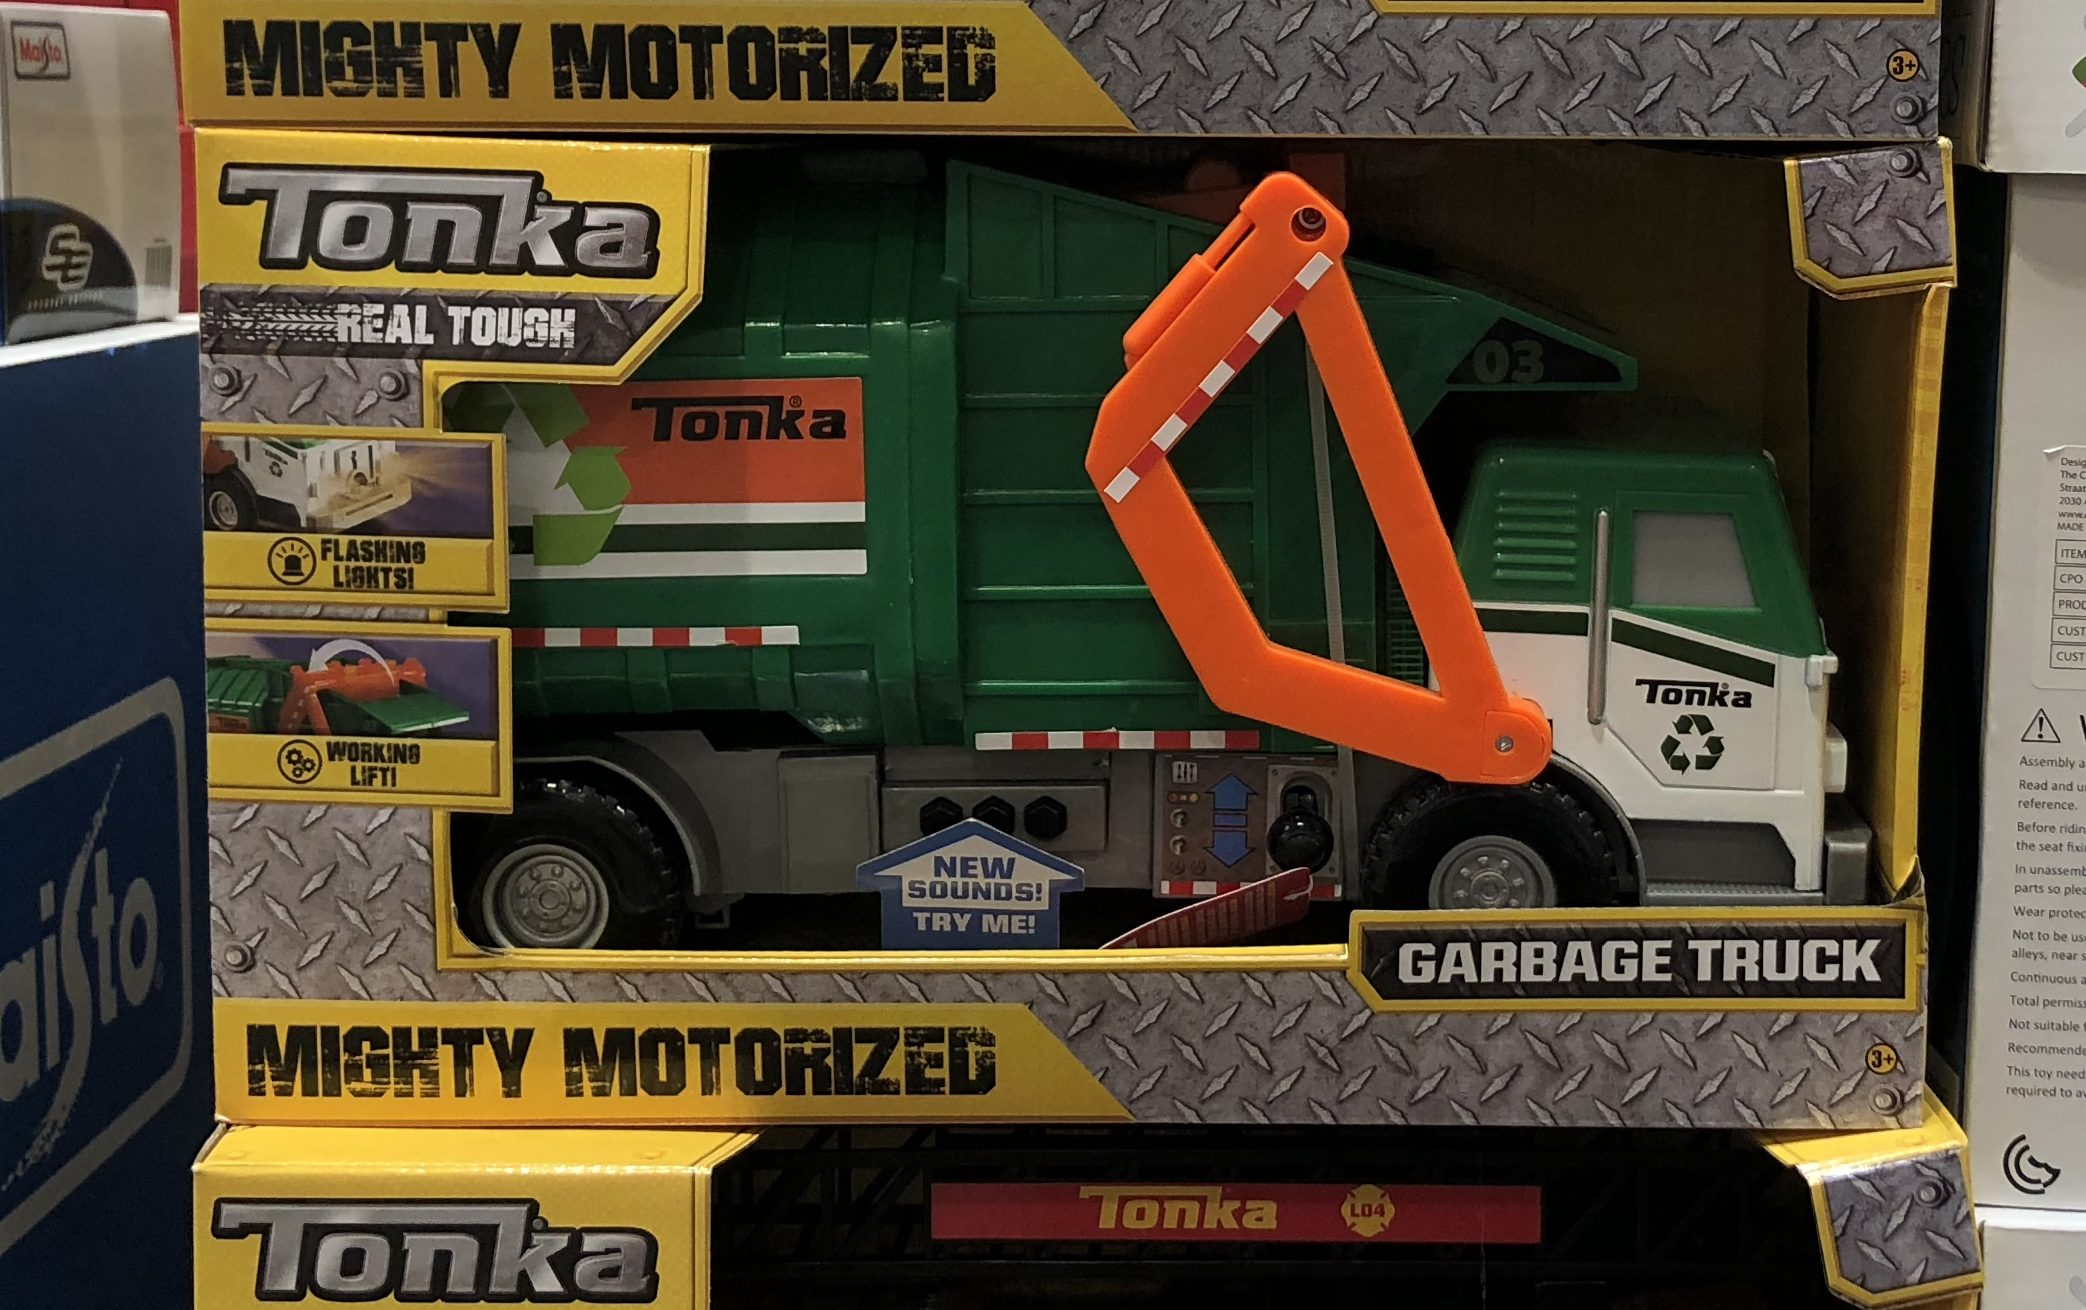 The best holiday toy deals for 2018 include Tonka trucks at Costco